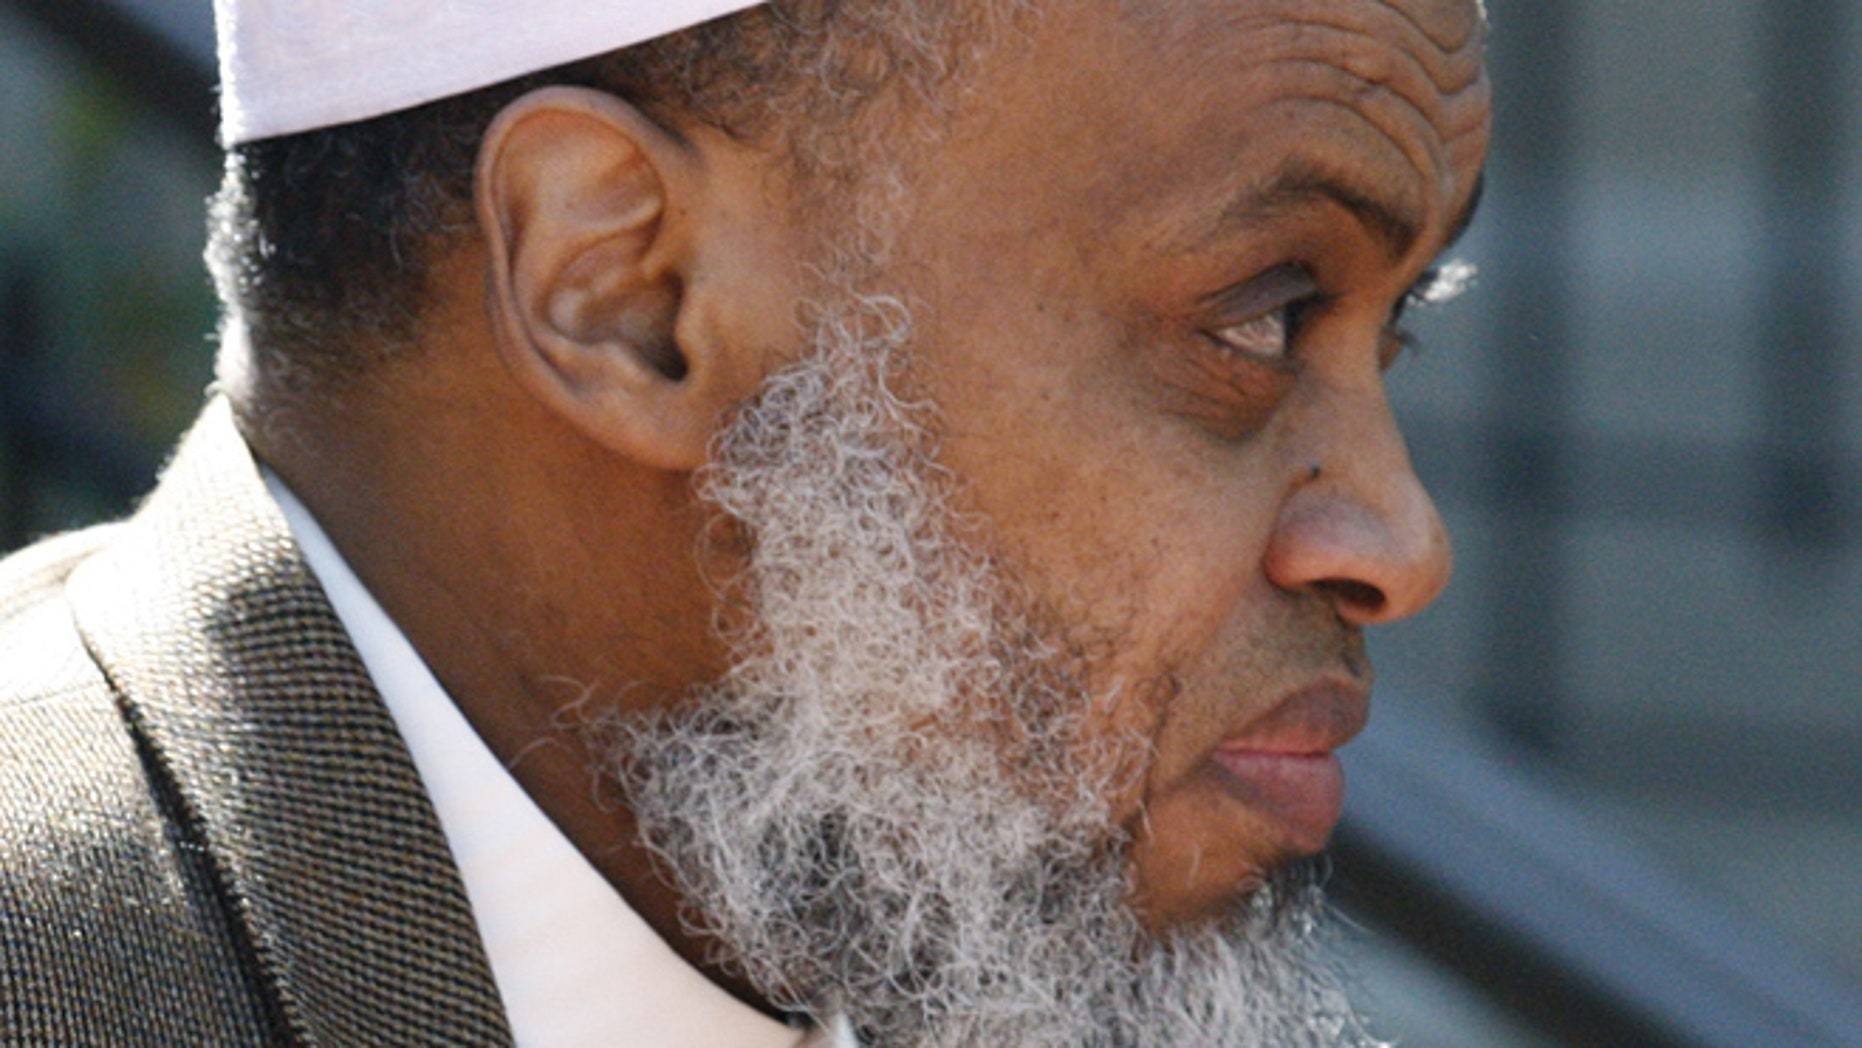 FILE 2012: Portland Imam Mohamed Sheikh Abdirahman Kariye leaves the United Sates Court of Appeals following oral arguments on the ACLU No Fly List challenge, in Portland, Ore.